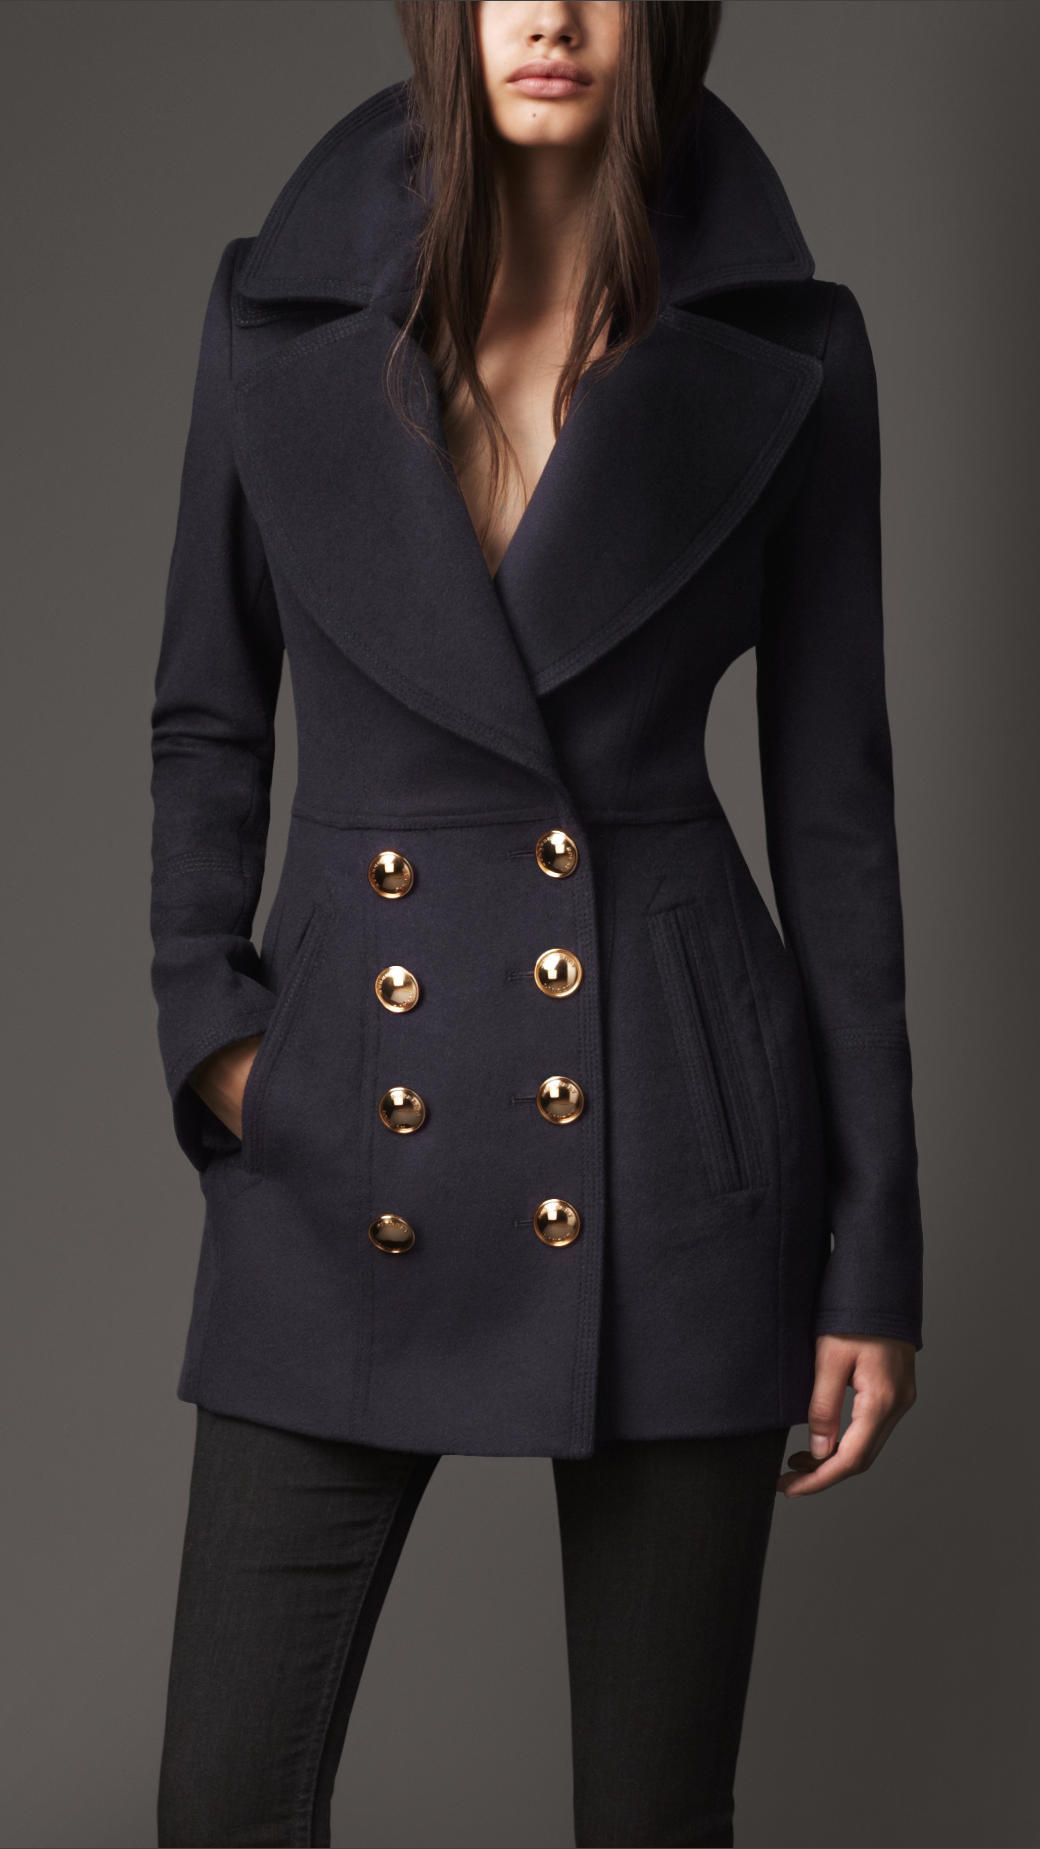 Fashion | Burberry coat, Coats and Clothes